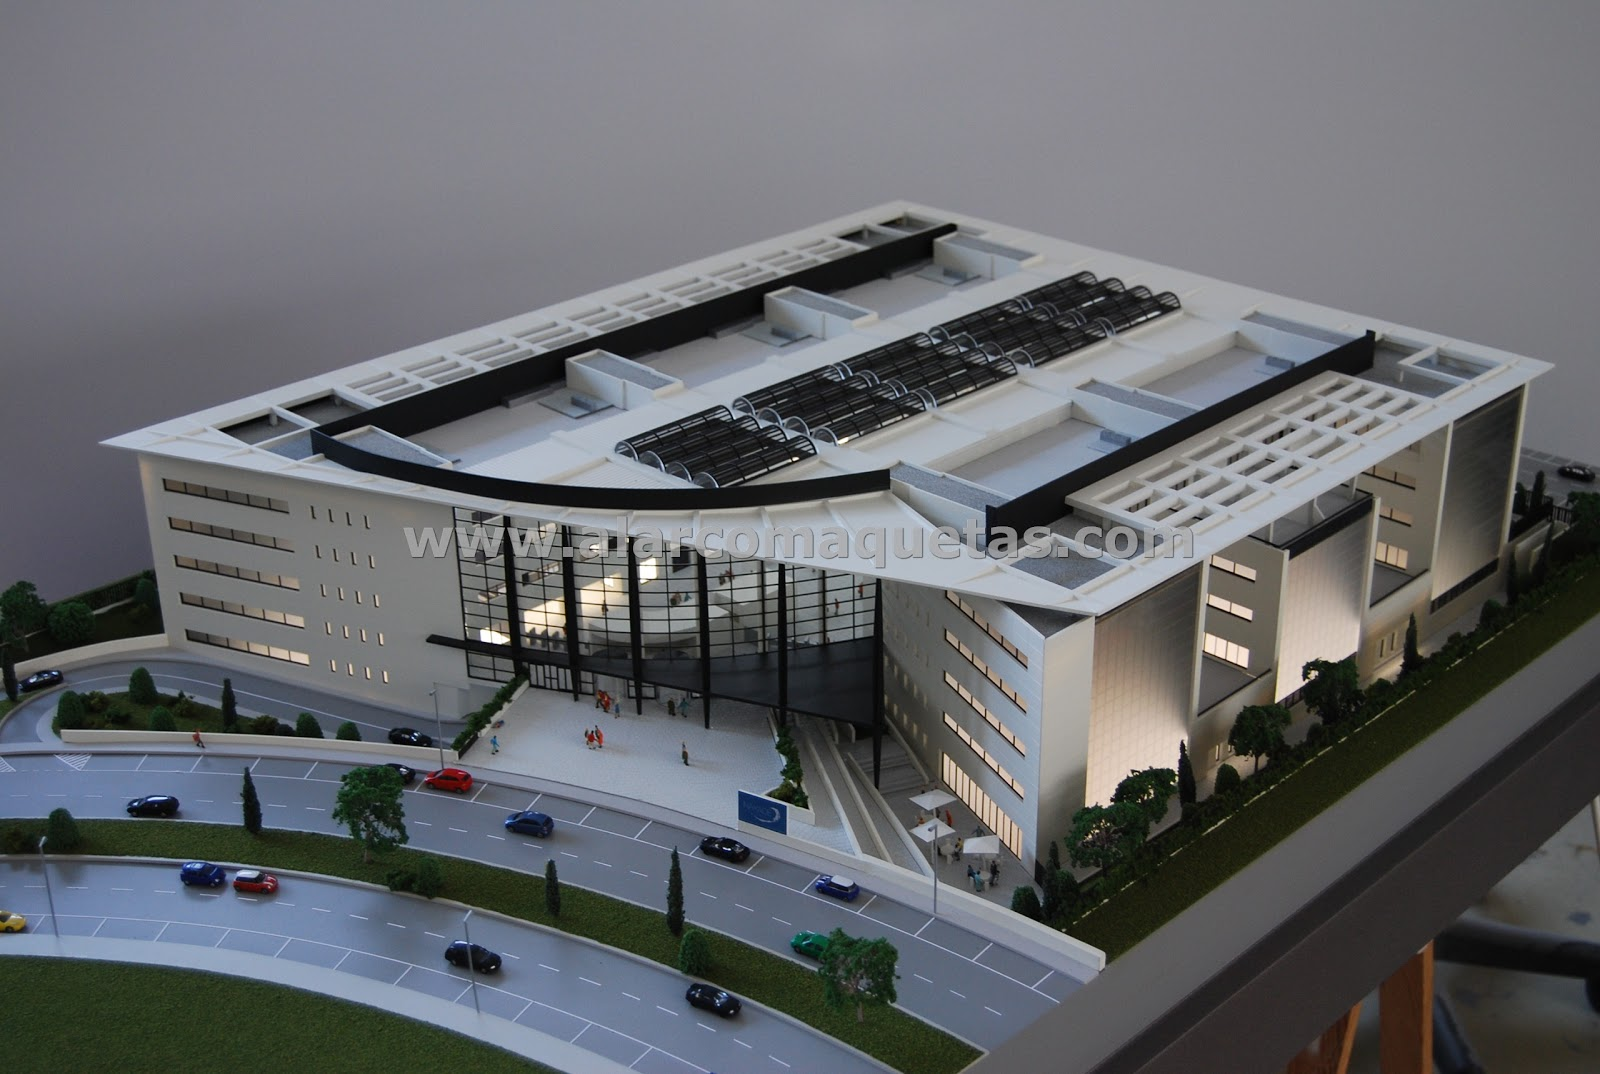 1000 images about maquetas on pinterest architectural for On arquitectura